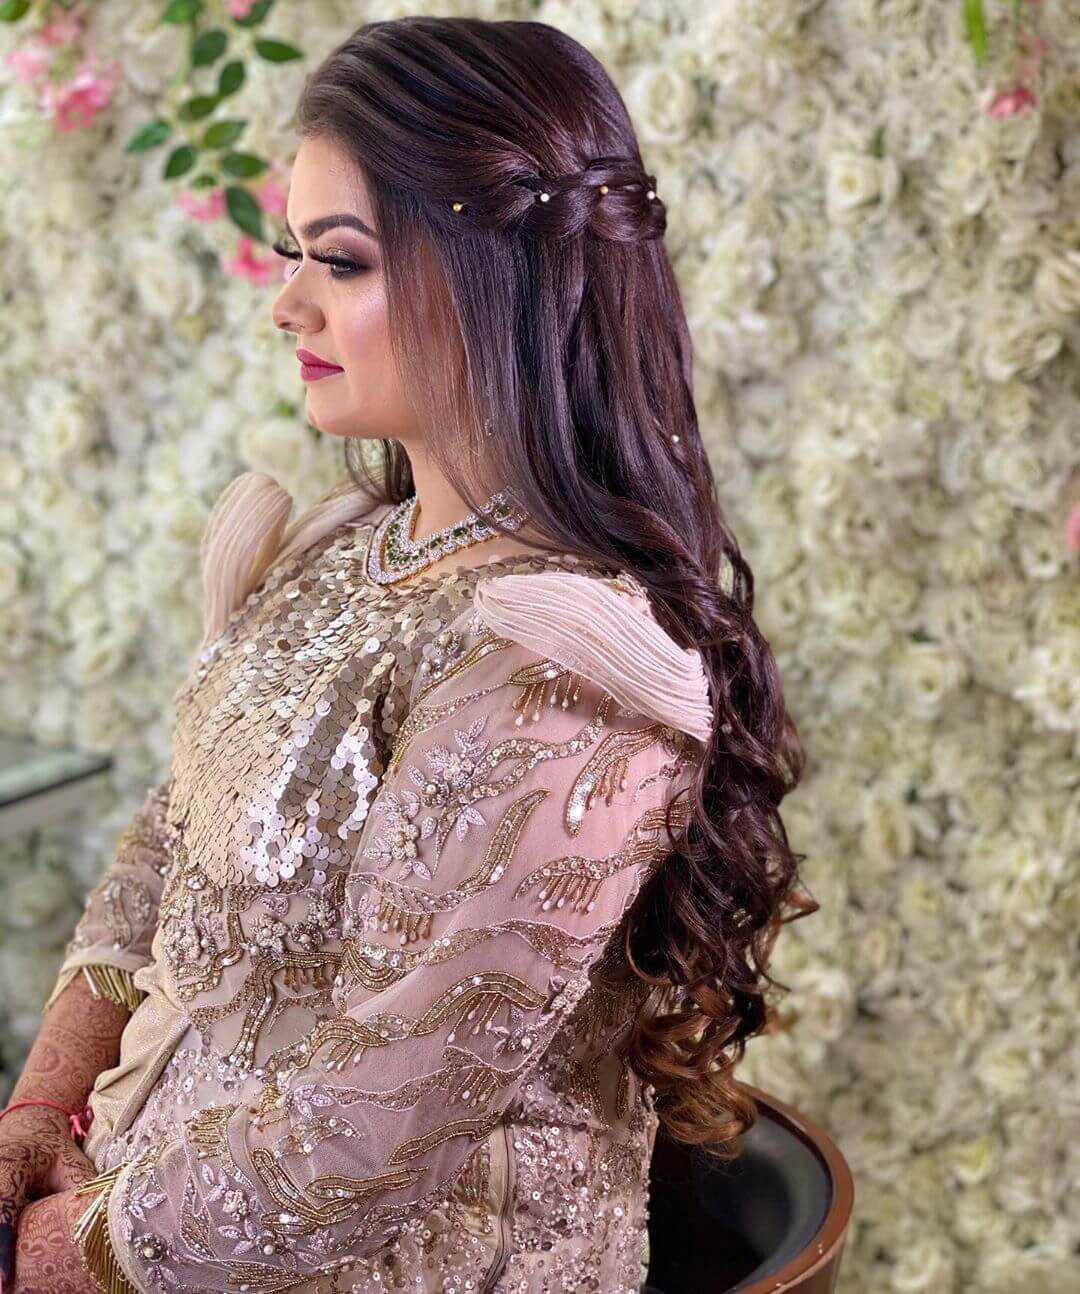 Chic Braids with Curls Hairstyles with Gown for Indian Wedding